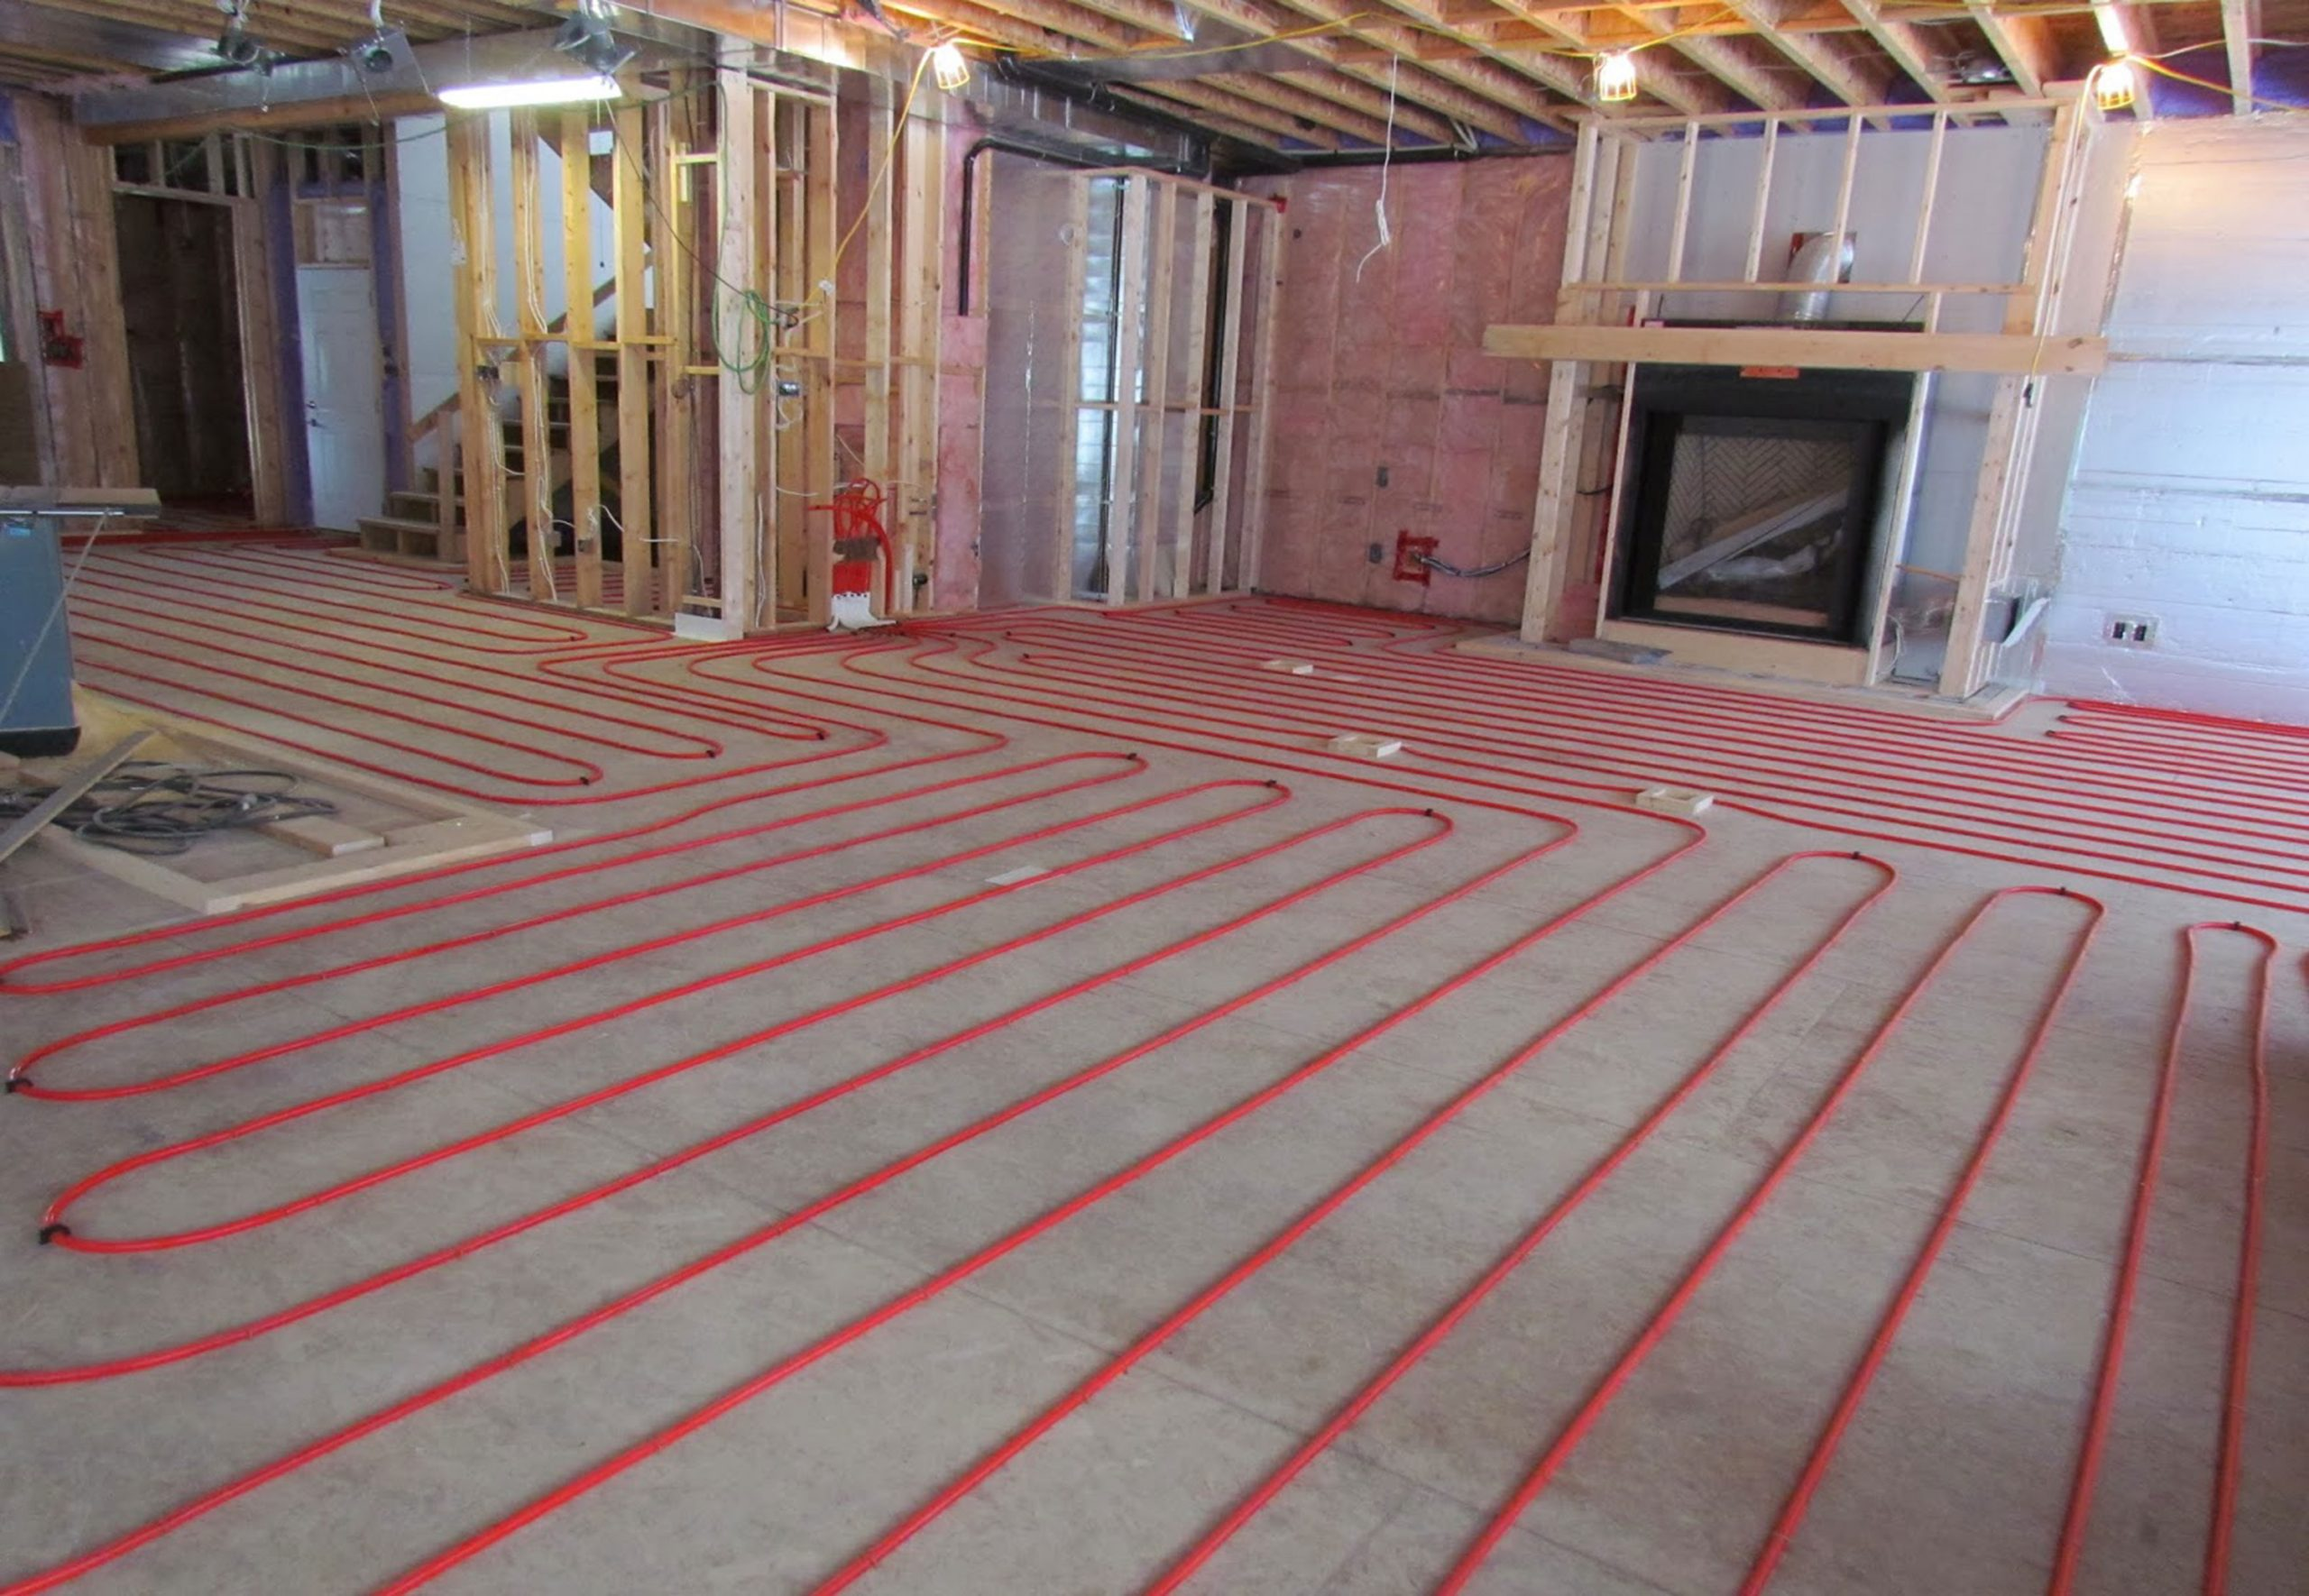 inspiring-good-flooring-for-basement-with-ask-rob-radiant-in-floor-heating-in-the-basement